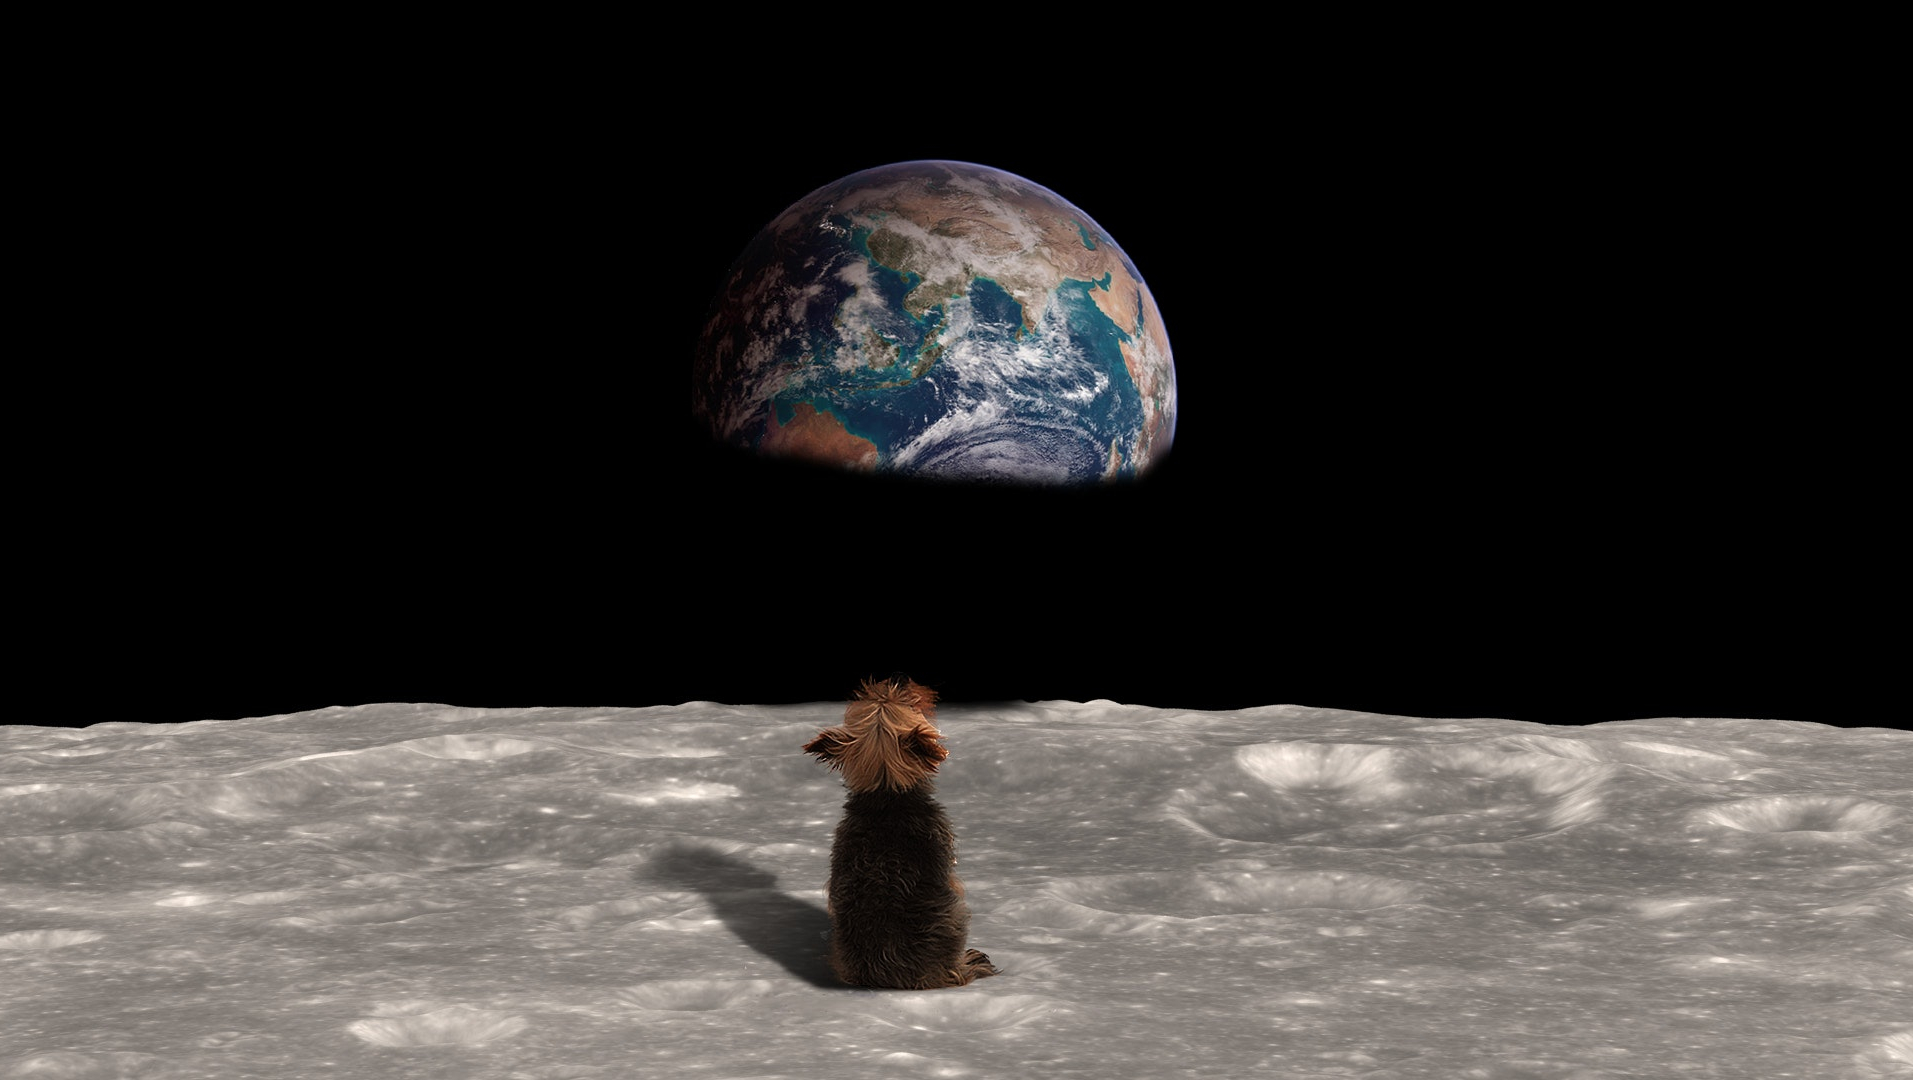 Dog looking at world